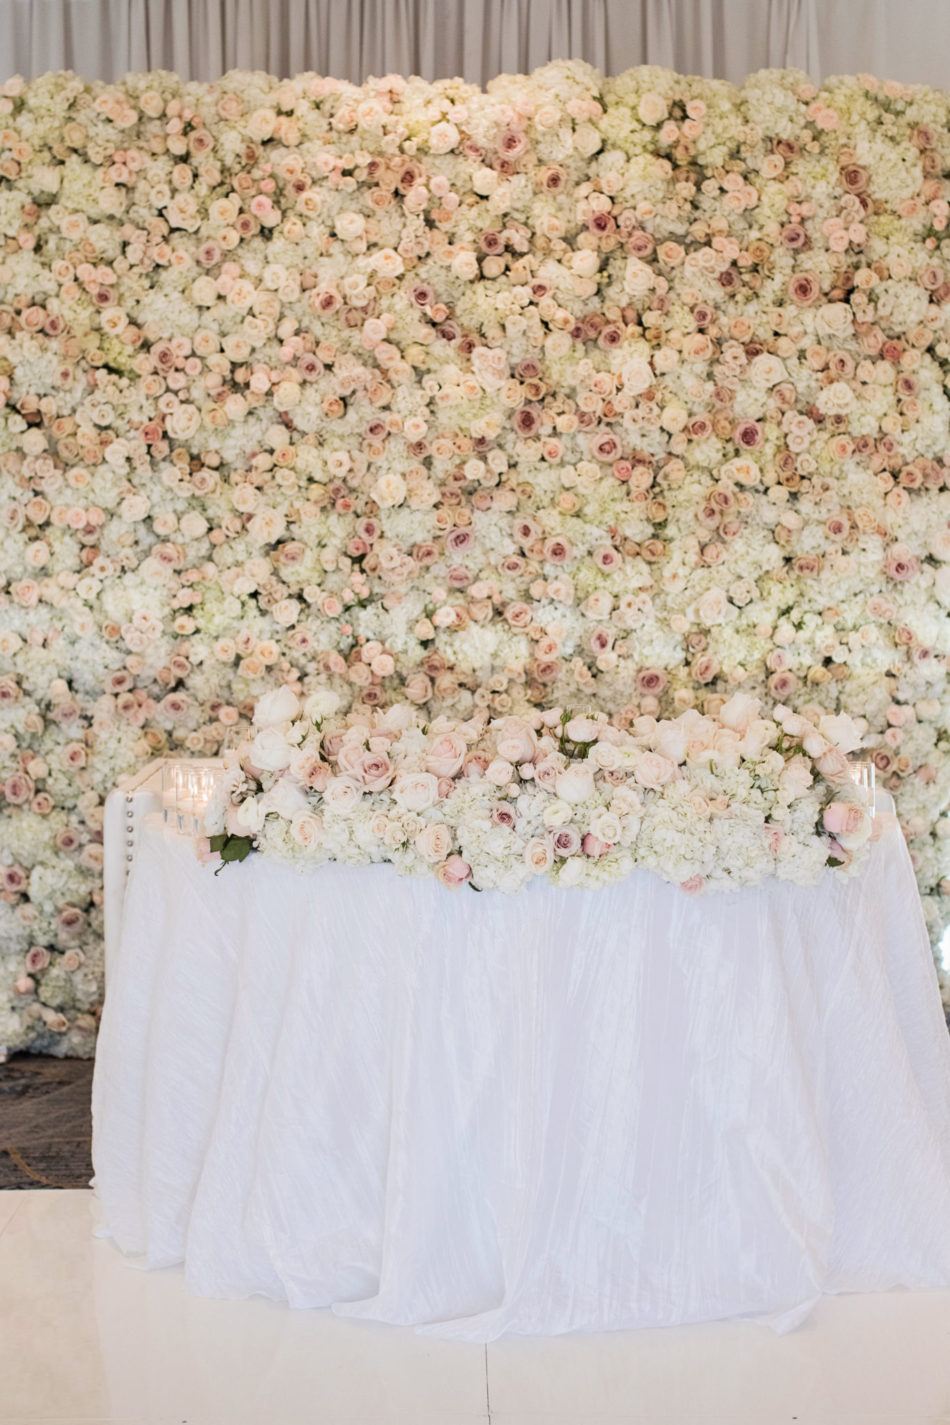 memorable sweetheart tables, floral design, florist, wedding florist, wedding flowers, orange county weddings, orange county wedding florist, orange county florist, orange county floral design, flowers by cina